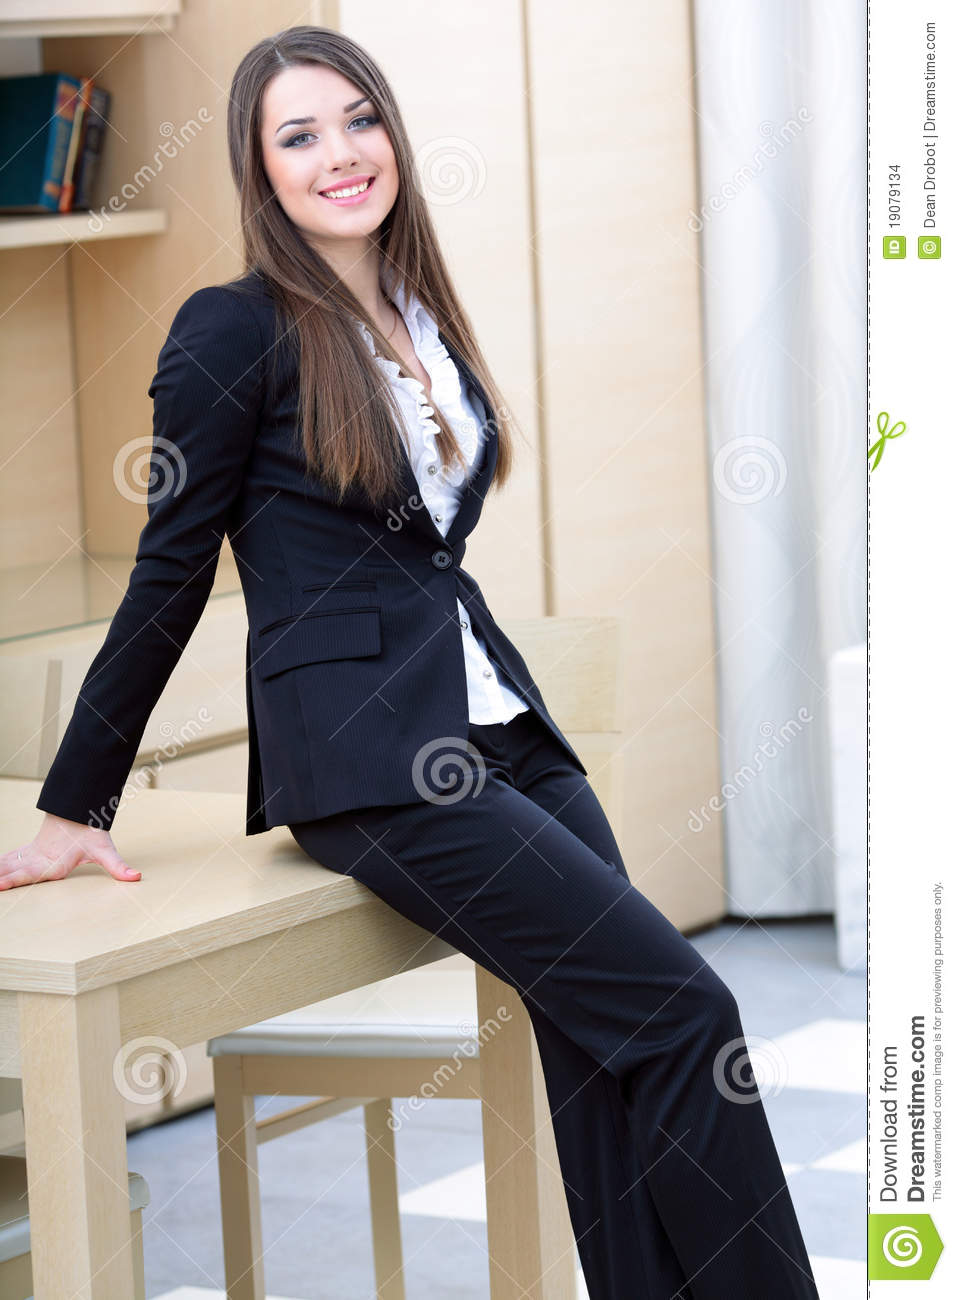 young business woman in office stock images   image 19079134